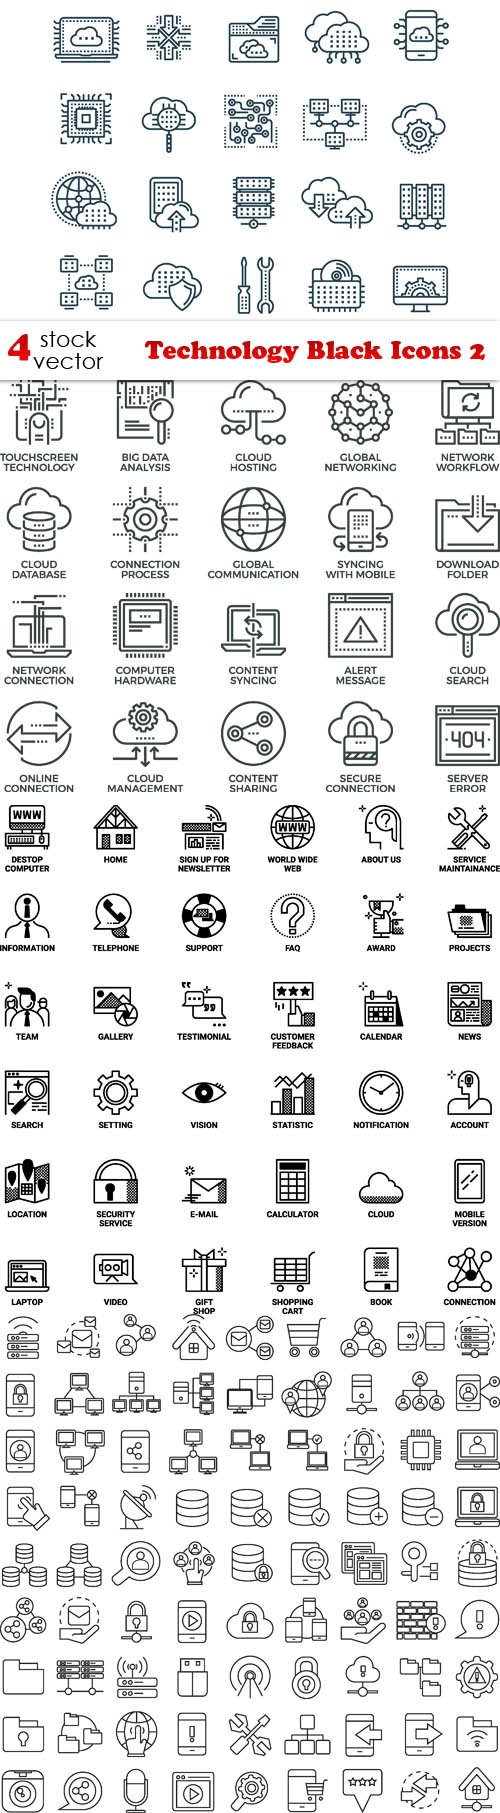 Vectors - Technology Black Icons 2